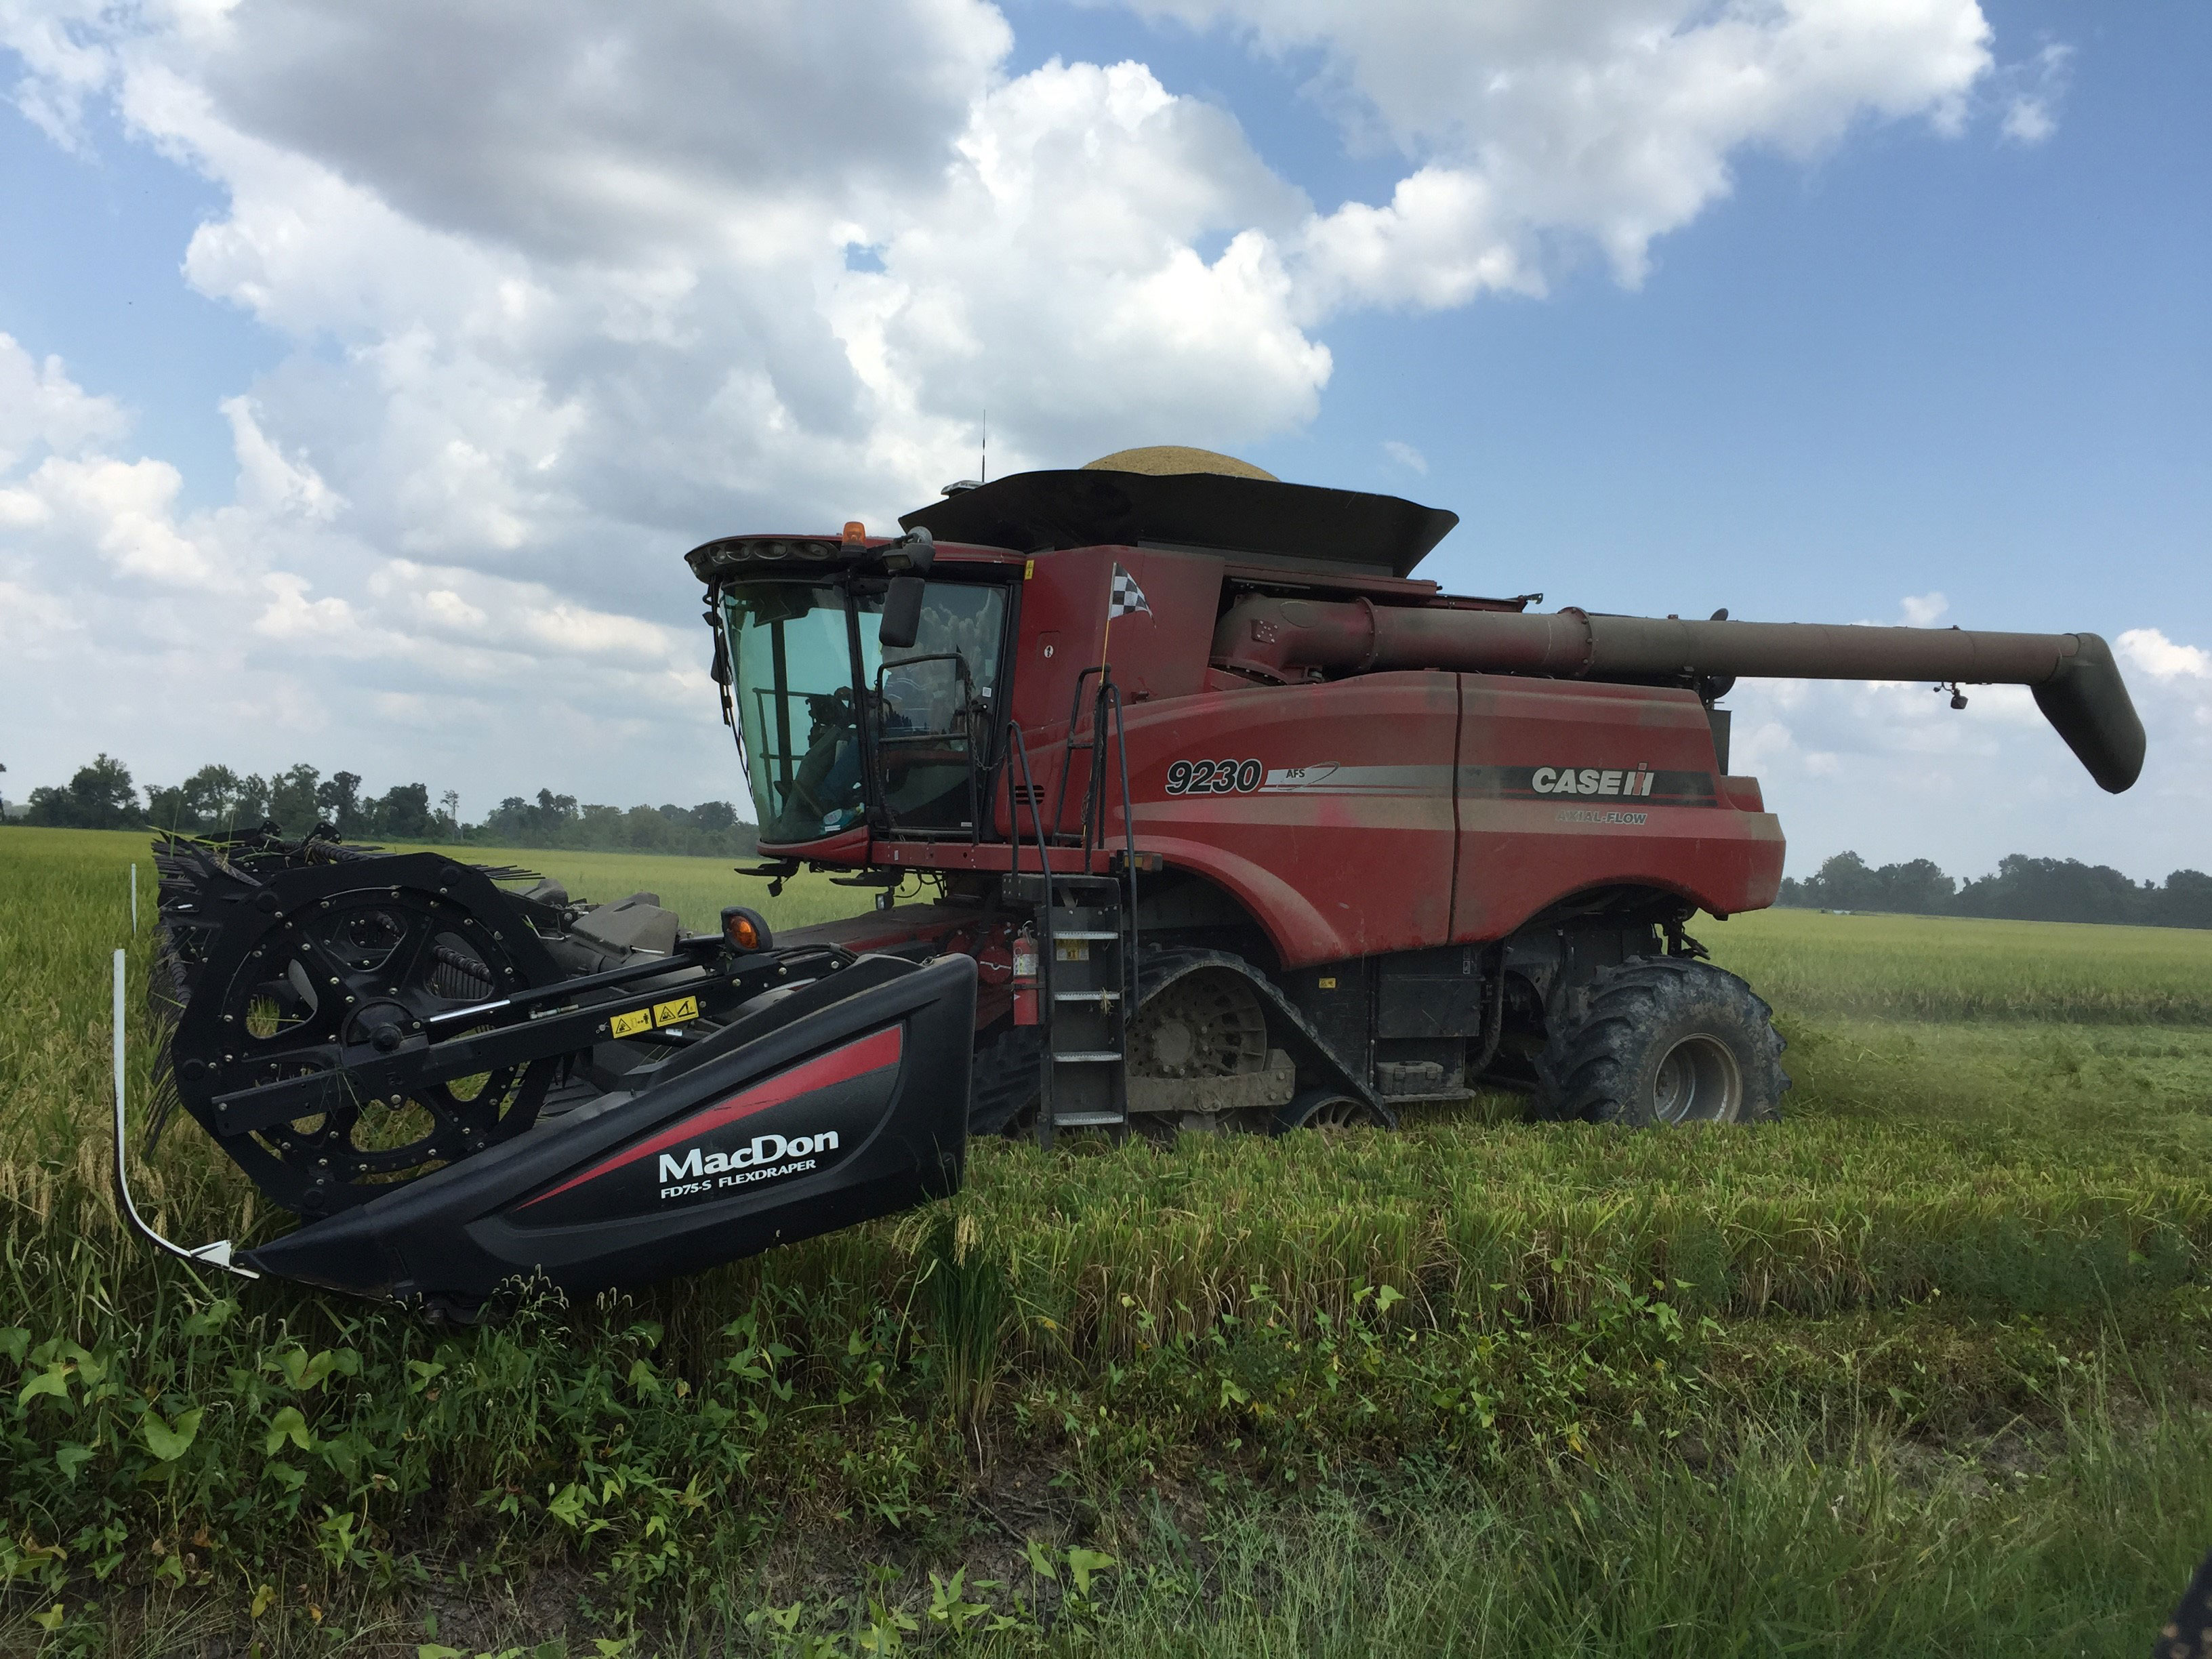 USA Rice intern and AR farmer William-Mencer-Driving-a-Case Combine